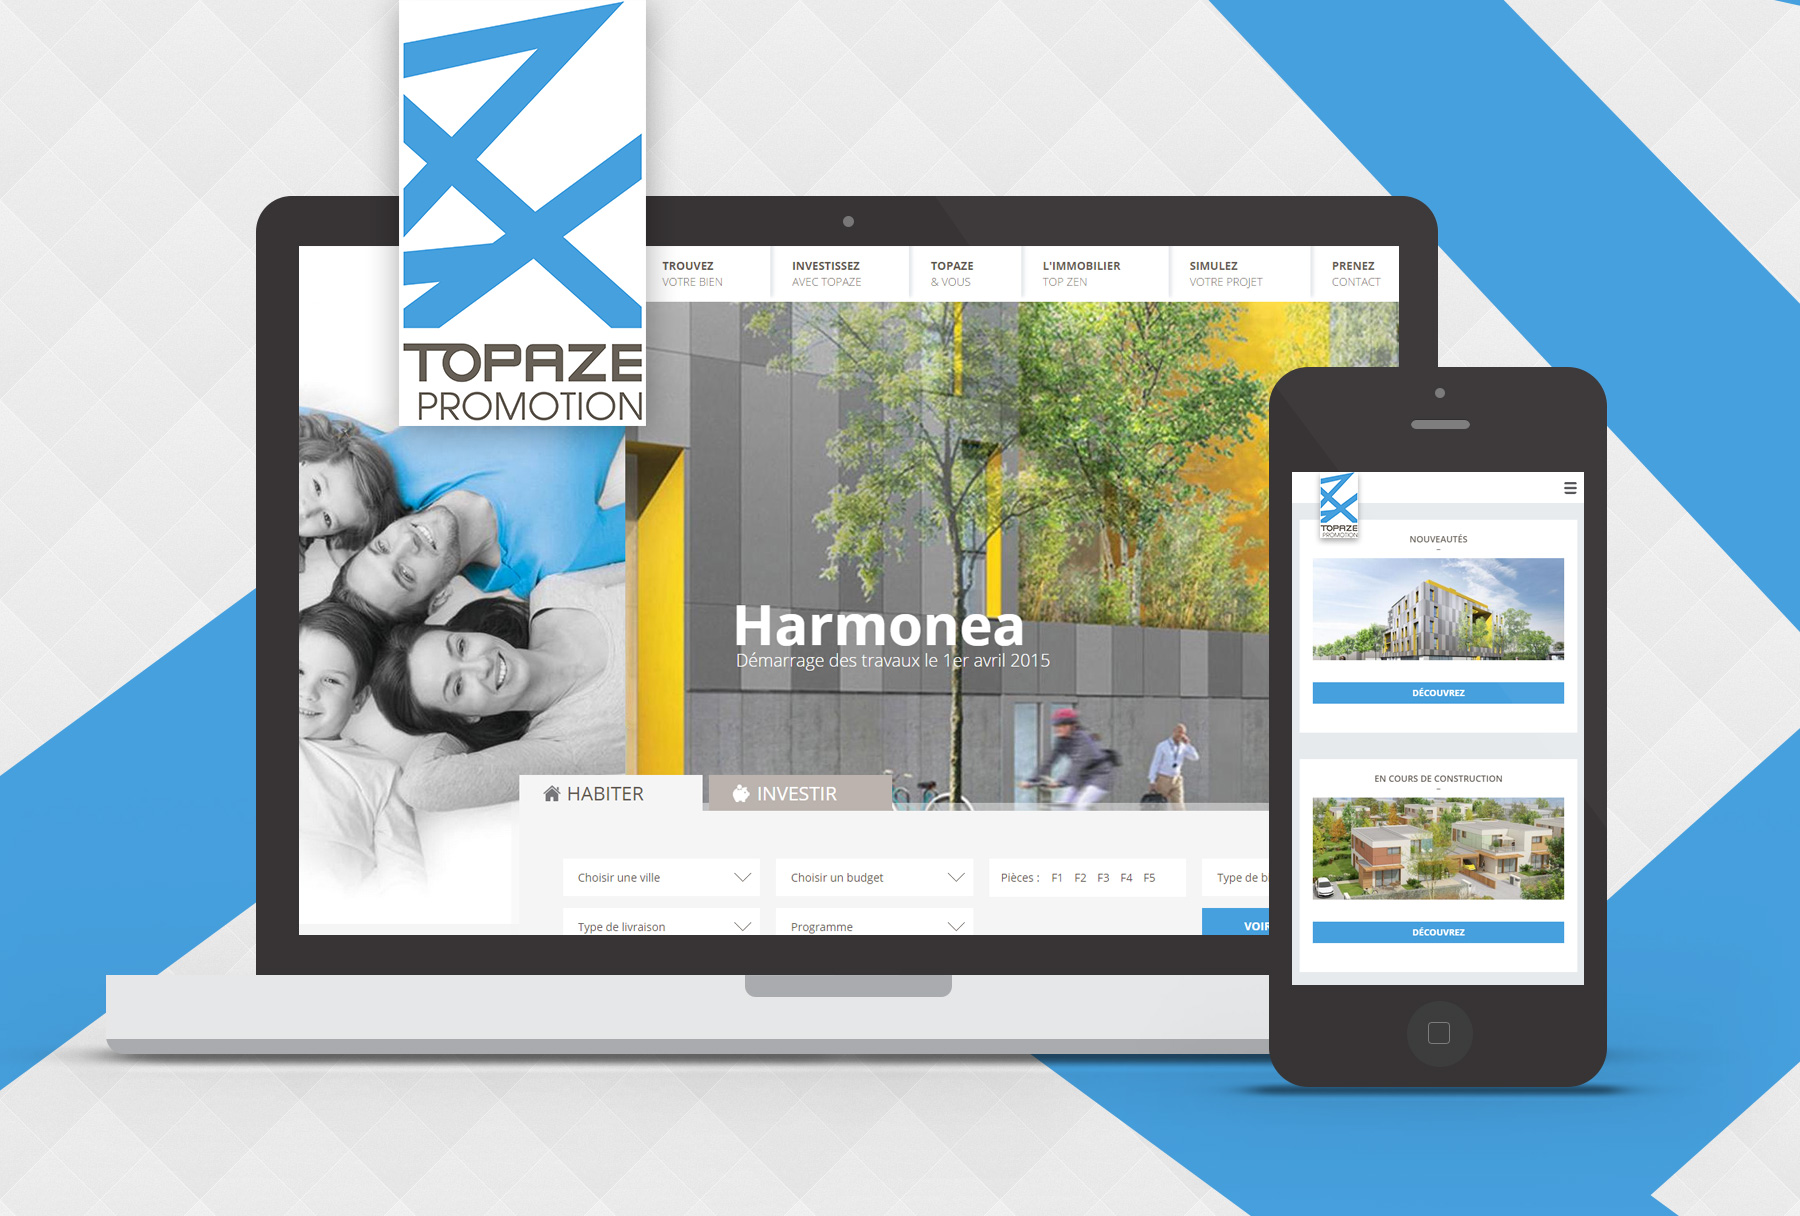 topaze-promotion-conception-site-internet-tiz